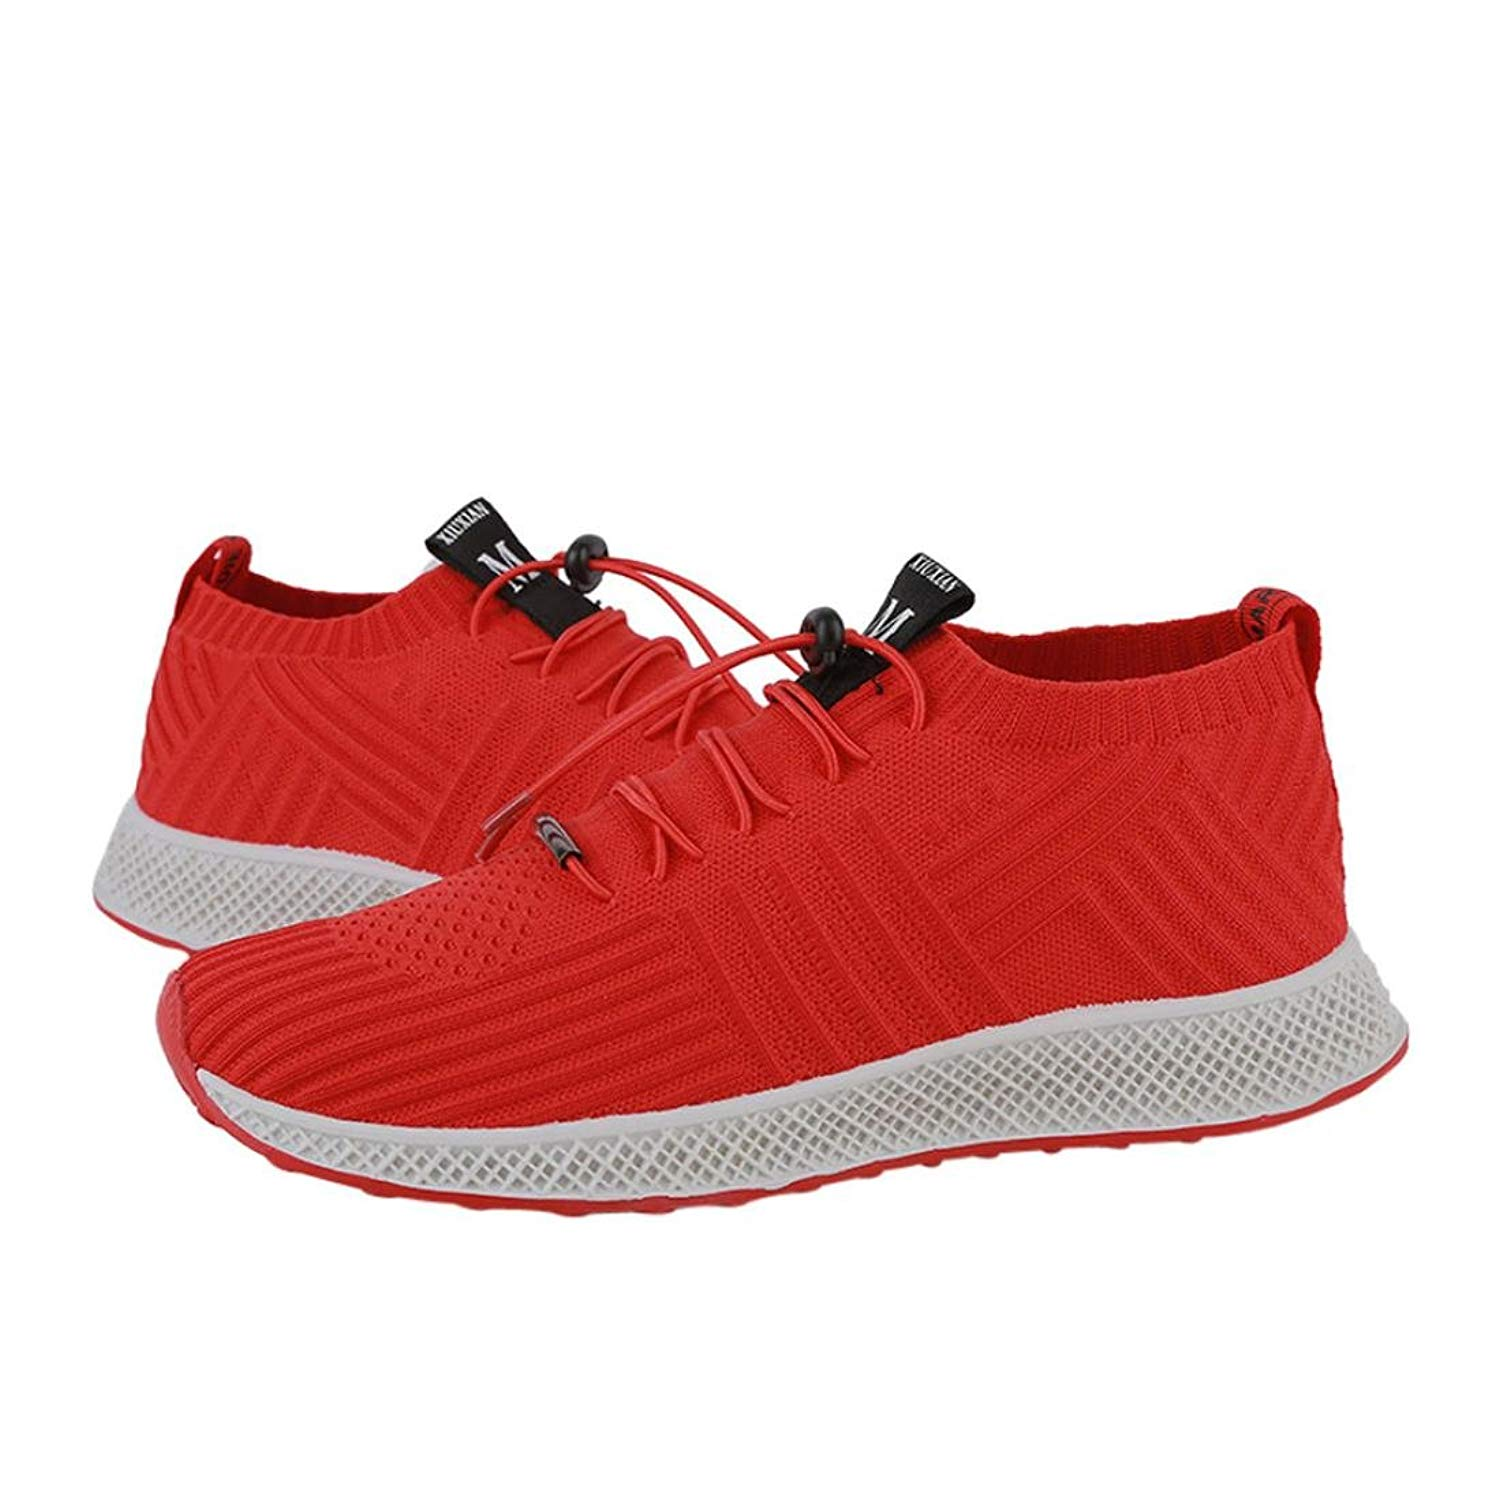 yoyorule Casual Shoes Fashion Men Sneakers Walking Casual Shoes Breathable Lace Up Shoes Running Shoes